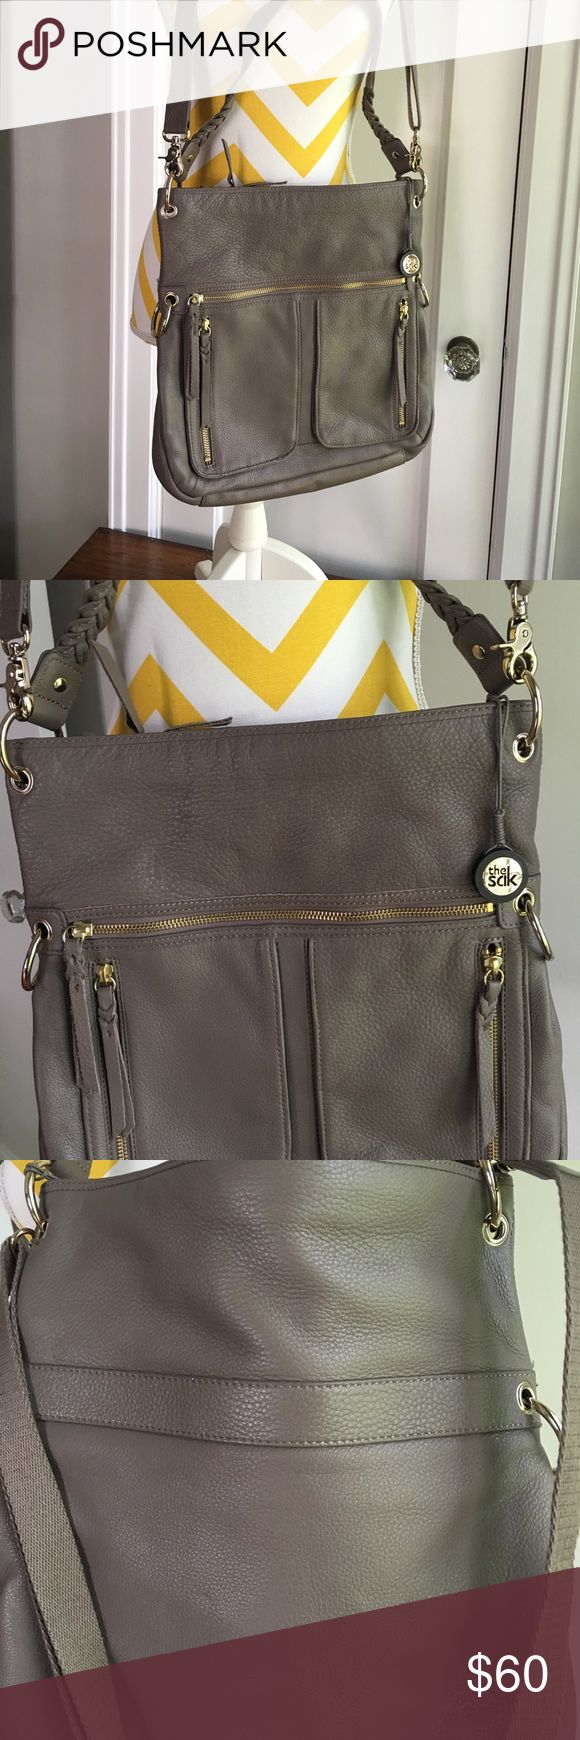 Sak 2 in one cross body / shoulder bag. Great cond Sak 2 in one cross body / shoulder bag. Great condition! This neutral bag goes with everything and fits all your necessities. Even big enough for an iPad, or notebook or books! Crossbody strap and shoulder strap. Many pockets. One small highlighter mark on side near seam (not noticeable) and one small string poking out(does not affect the bag at all) The Sak Bags Crossbody Bags